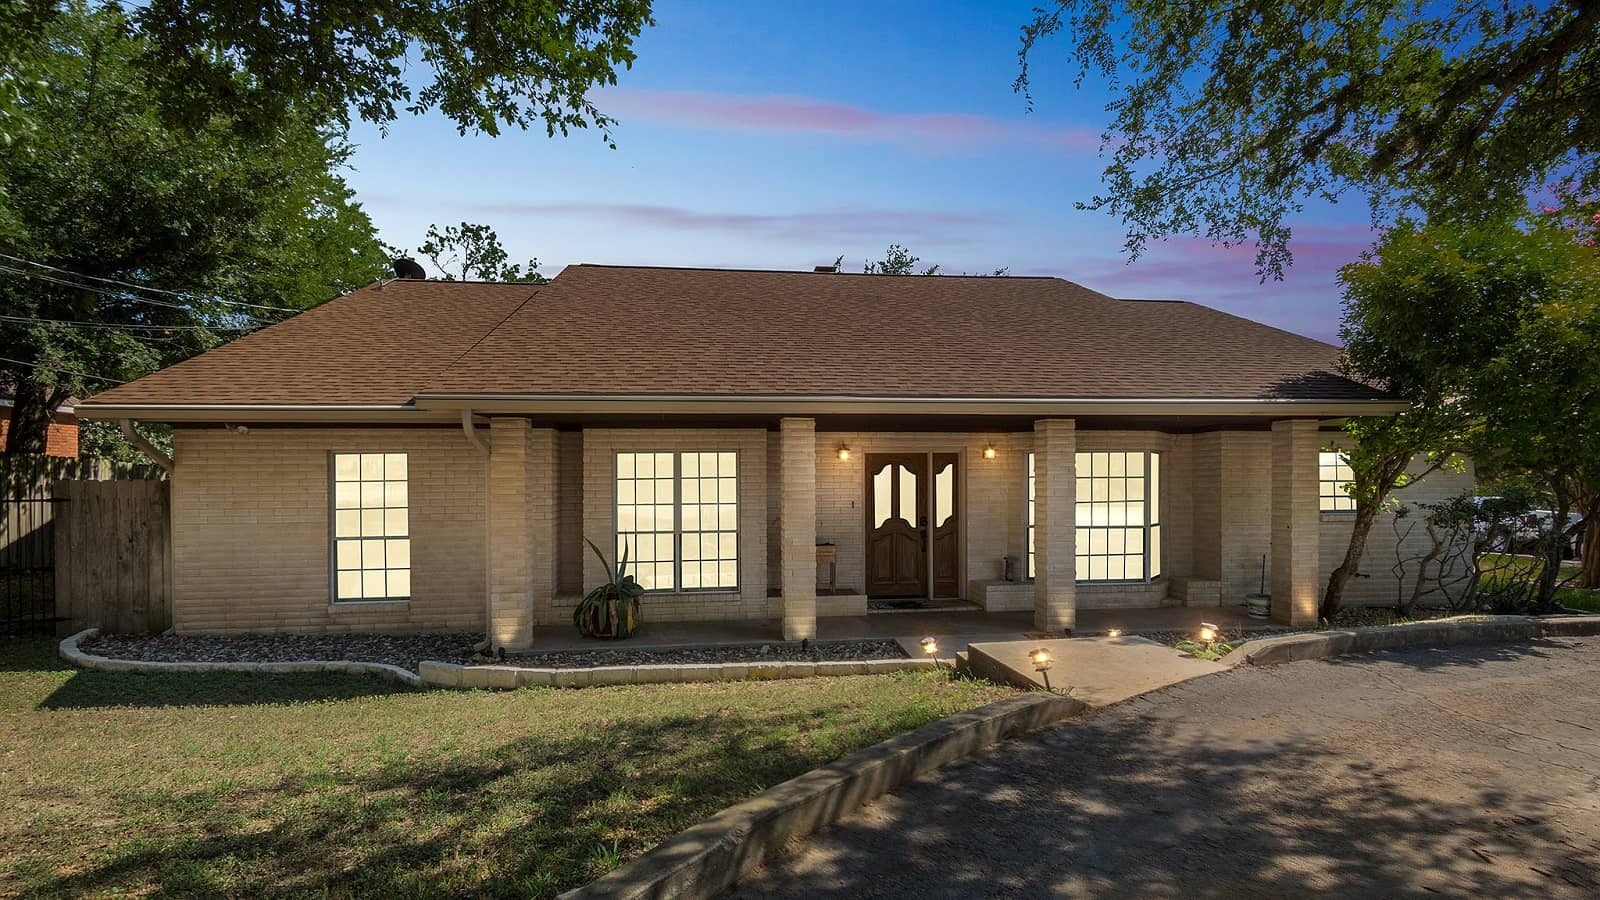 Real Estate Photography in San Marcos - TX - Front View